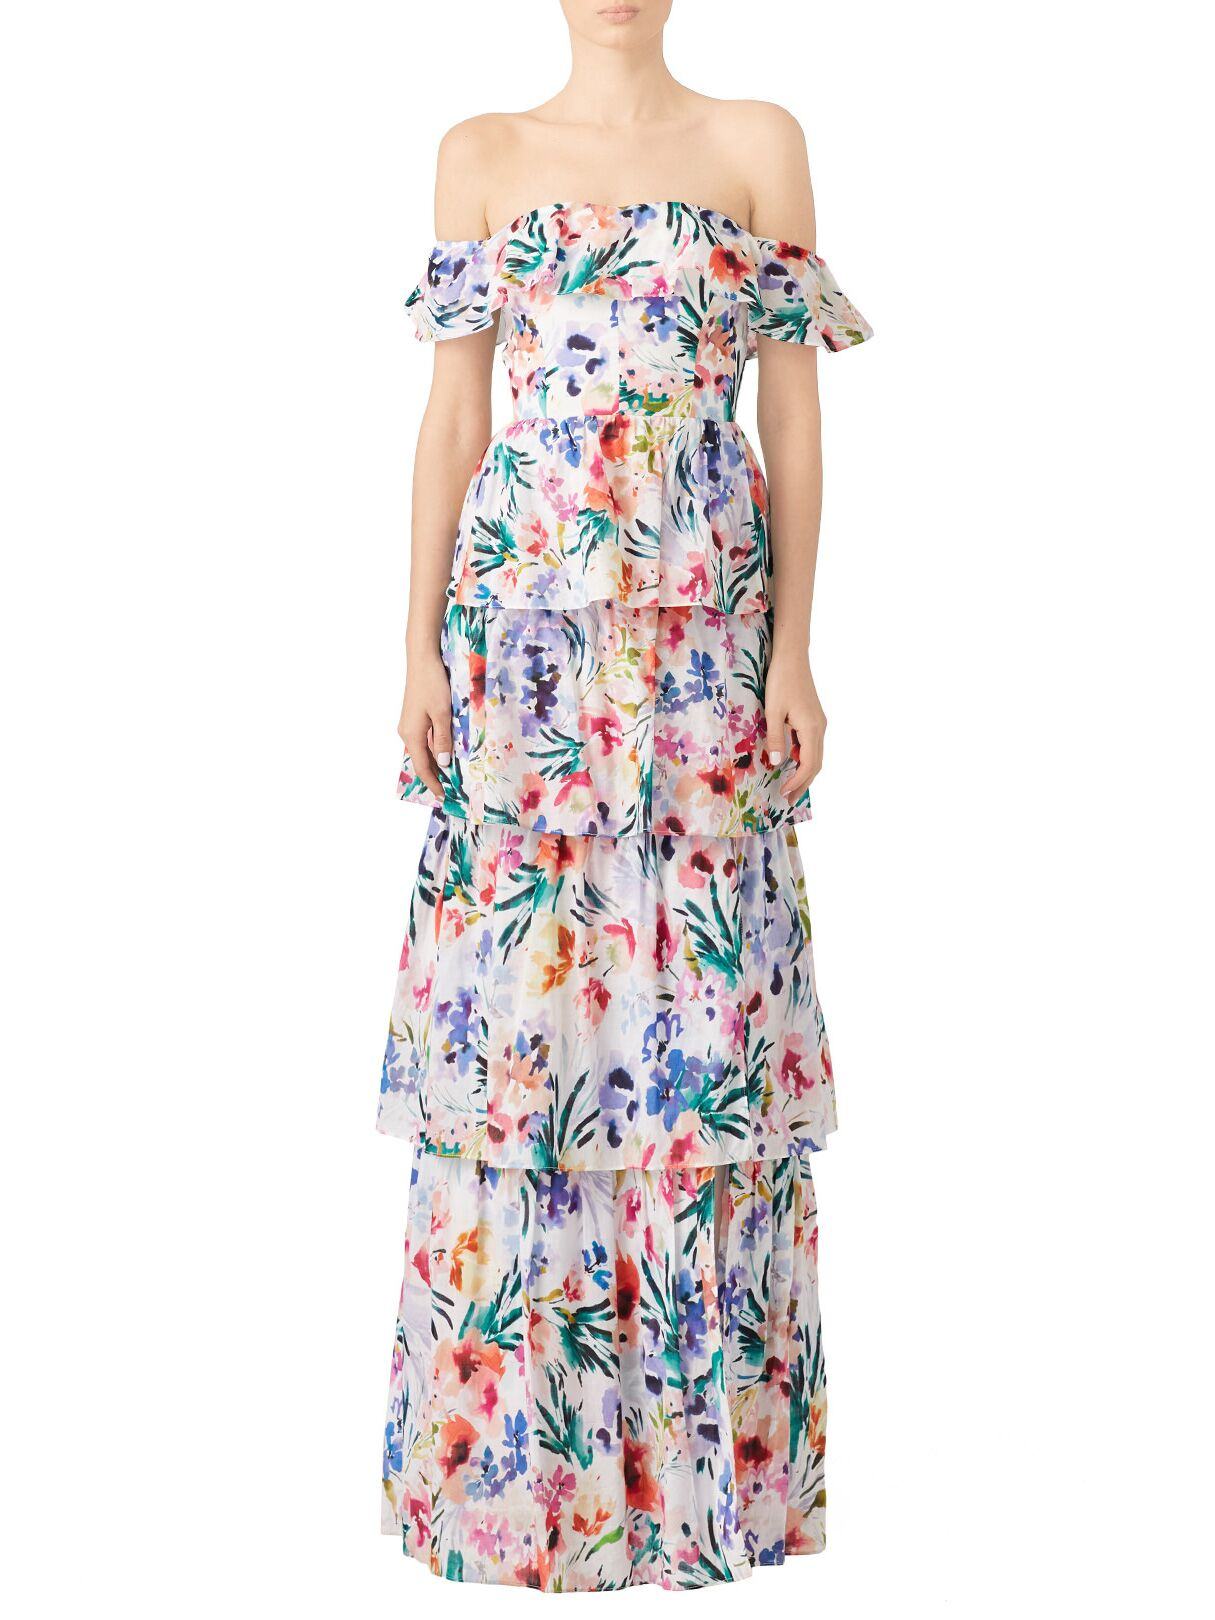 7843ef21e8f What to Wear to a Wedding  Wedding Outfits for Men and Women